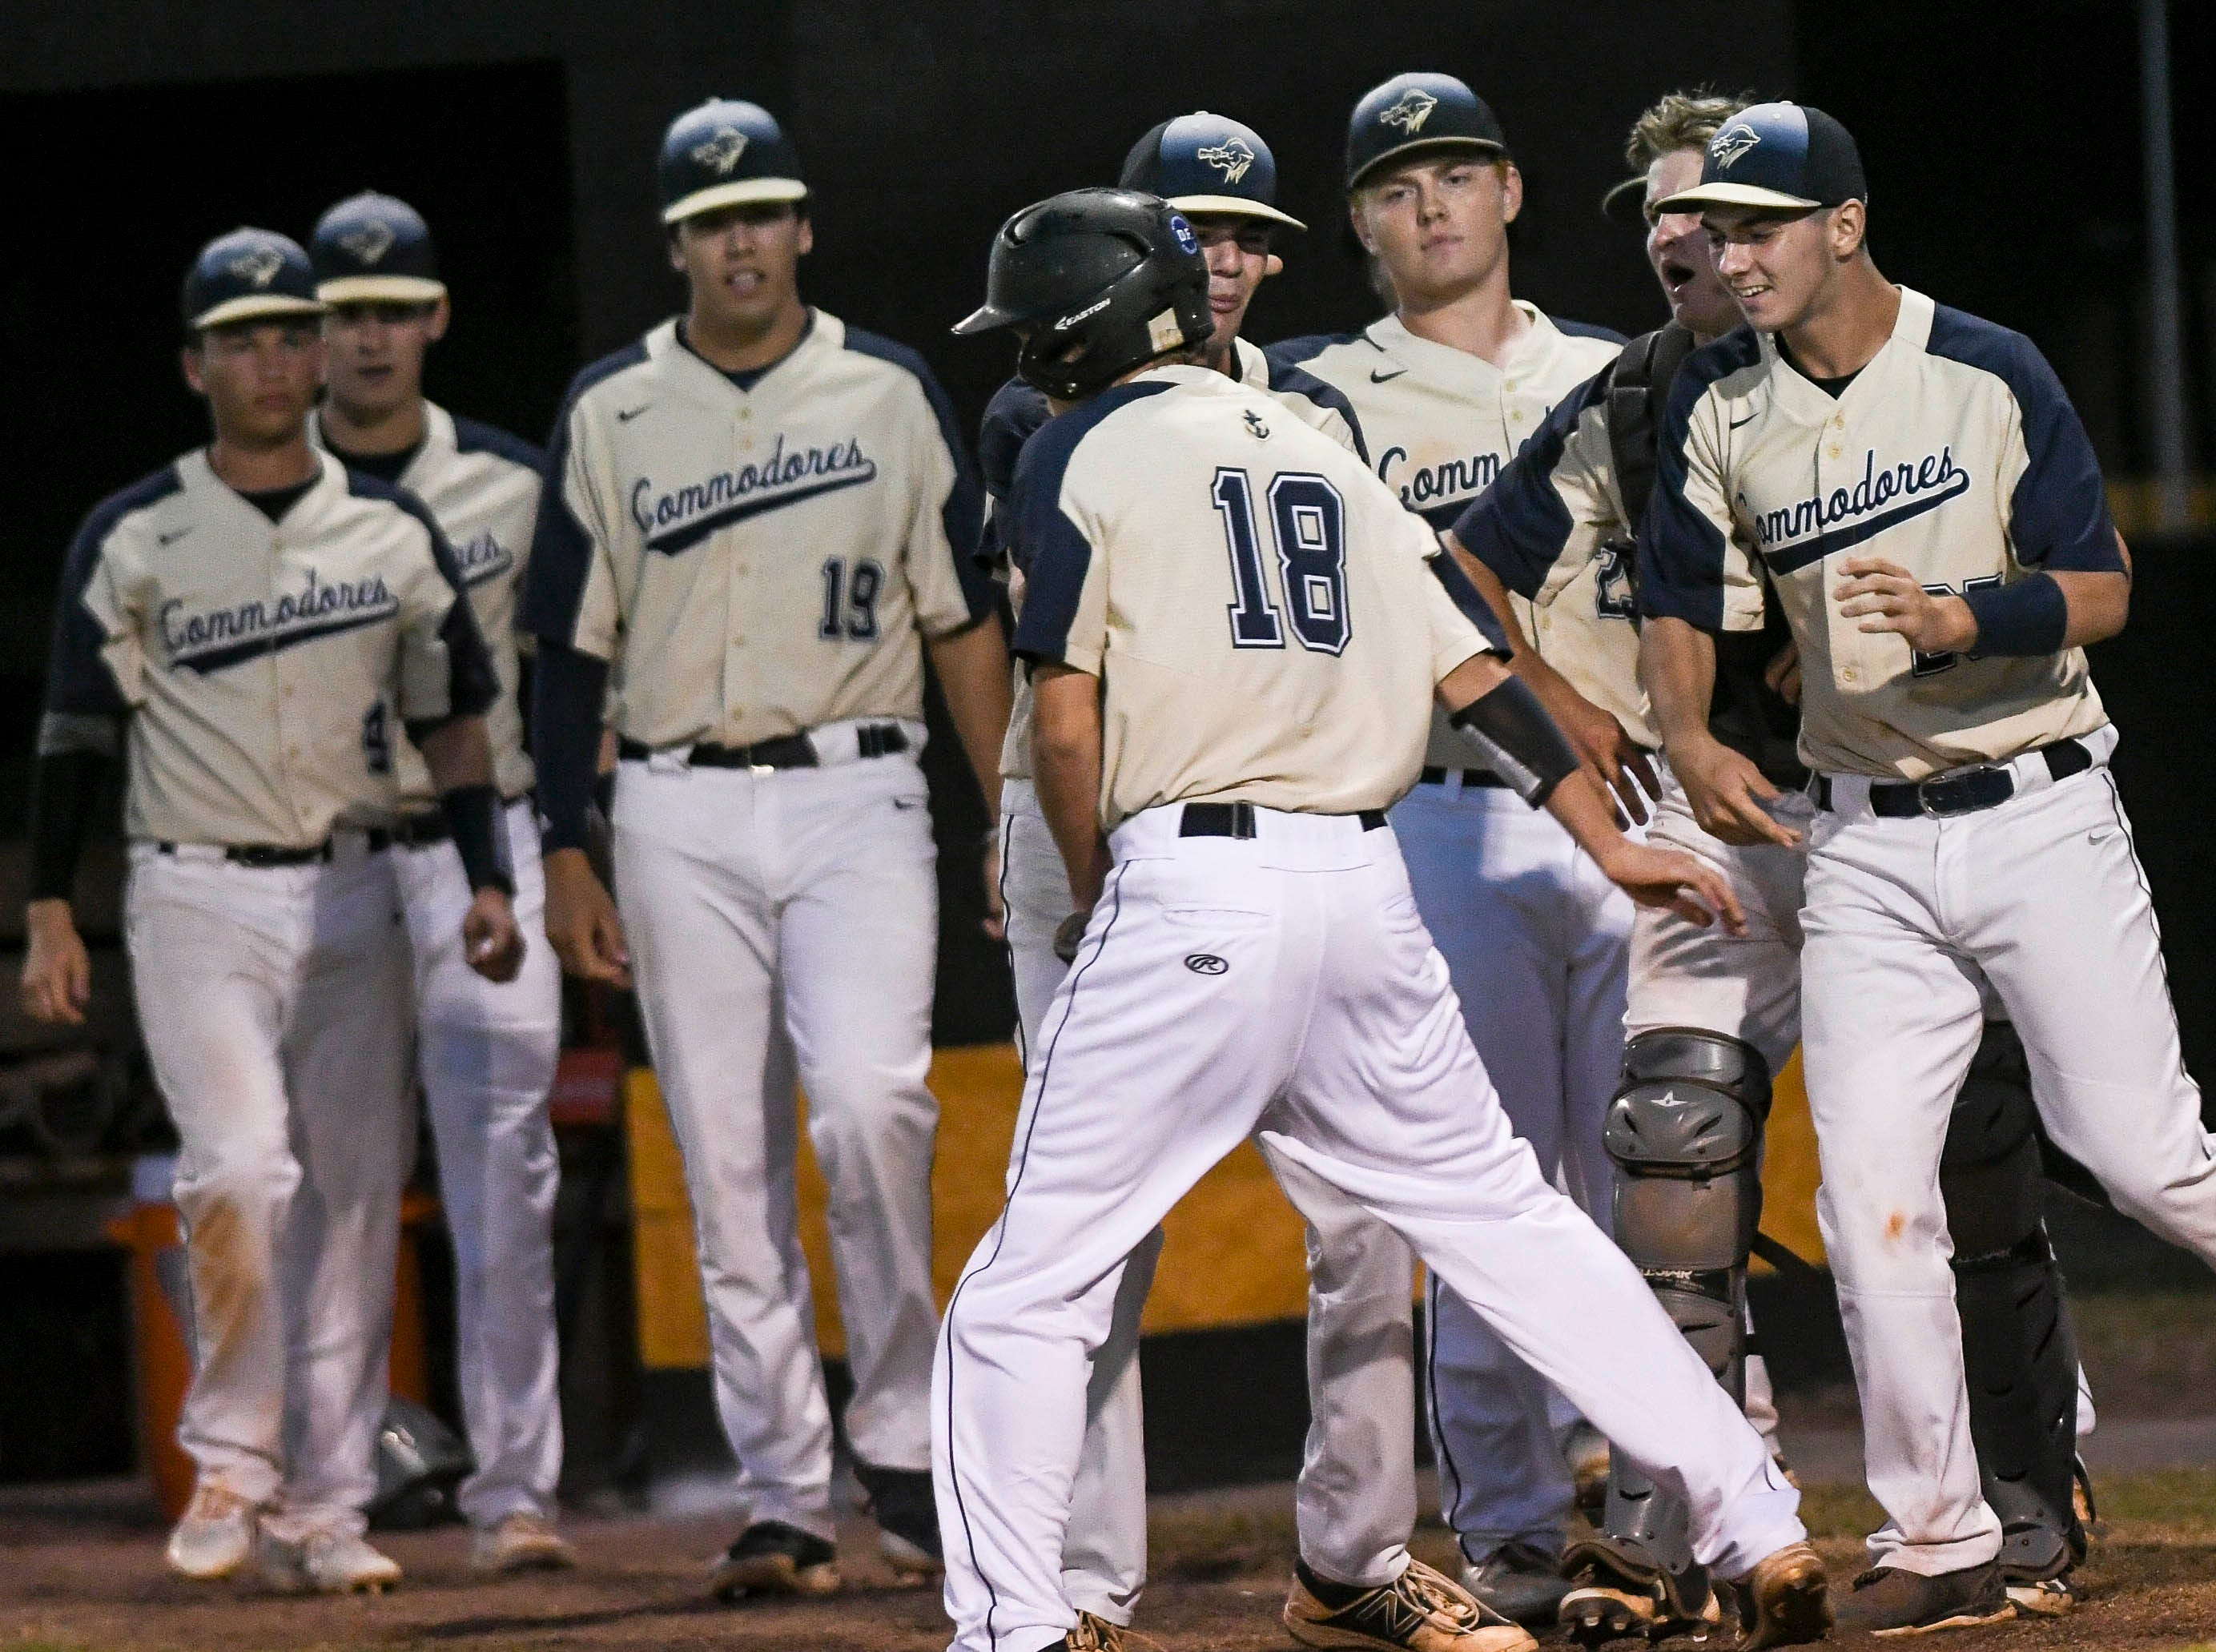 Eau Gallie's Michael O'Keefe celebrates with his teammates during Tuesday's game in Merritt Island